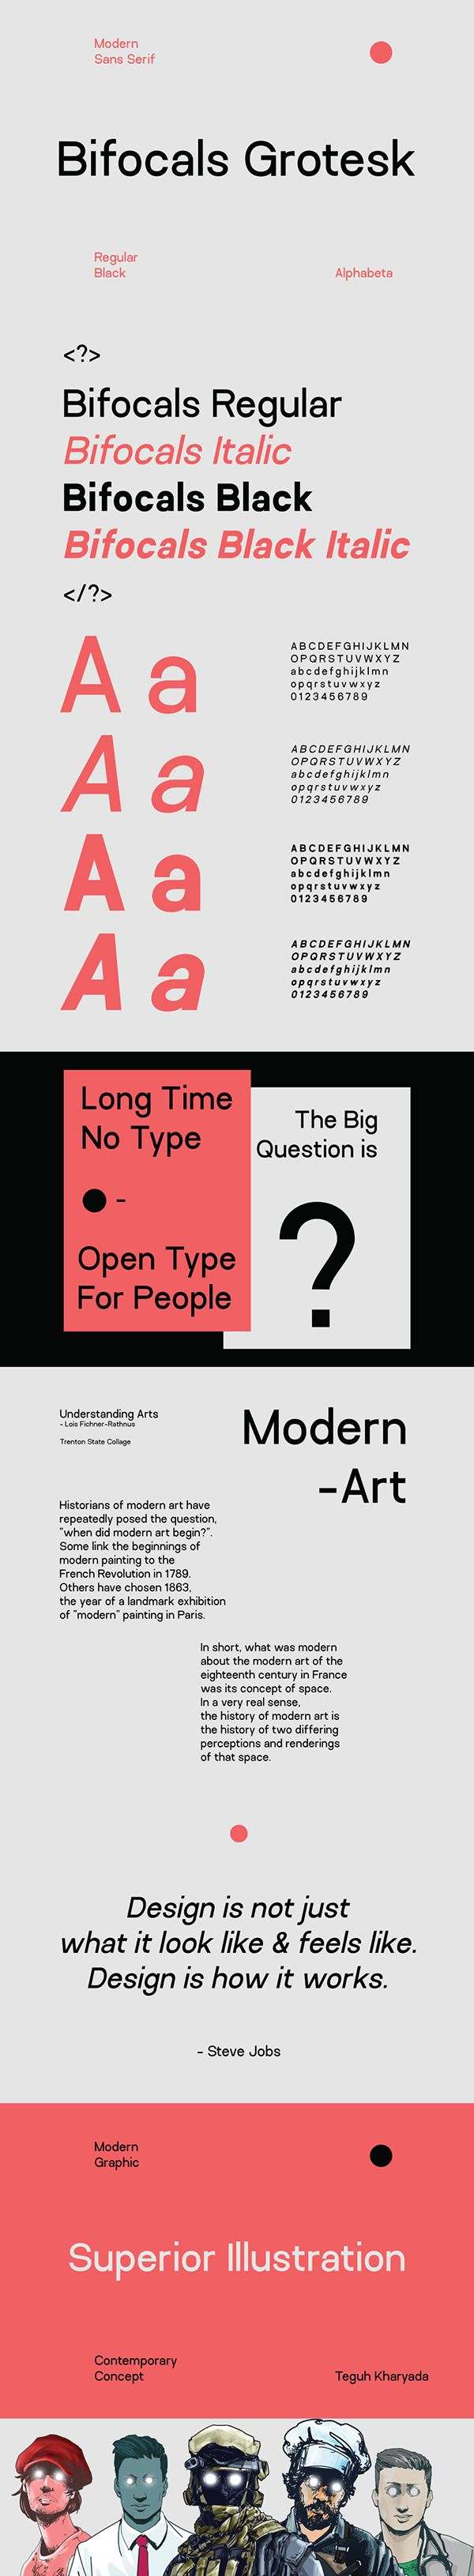 Download BIFOCALS GROTESK - FREE FONT FAMILY on Behance (With images)